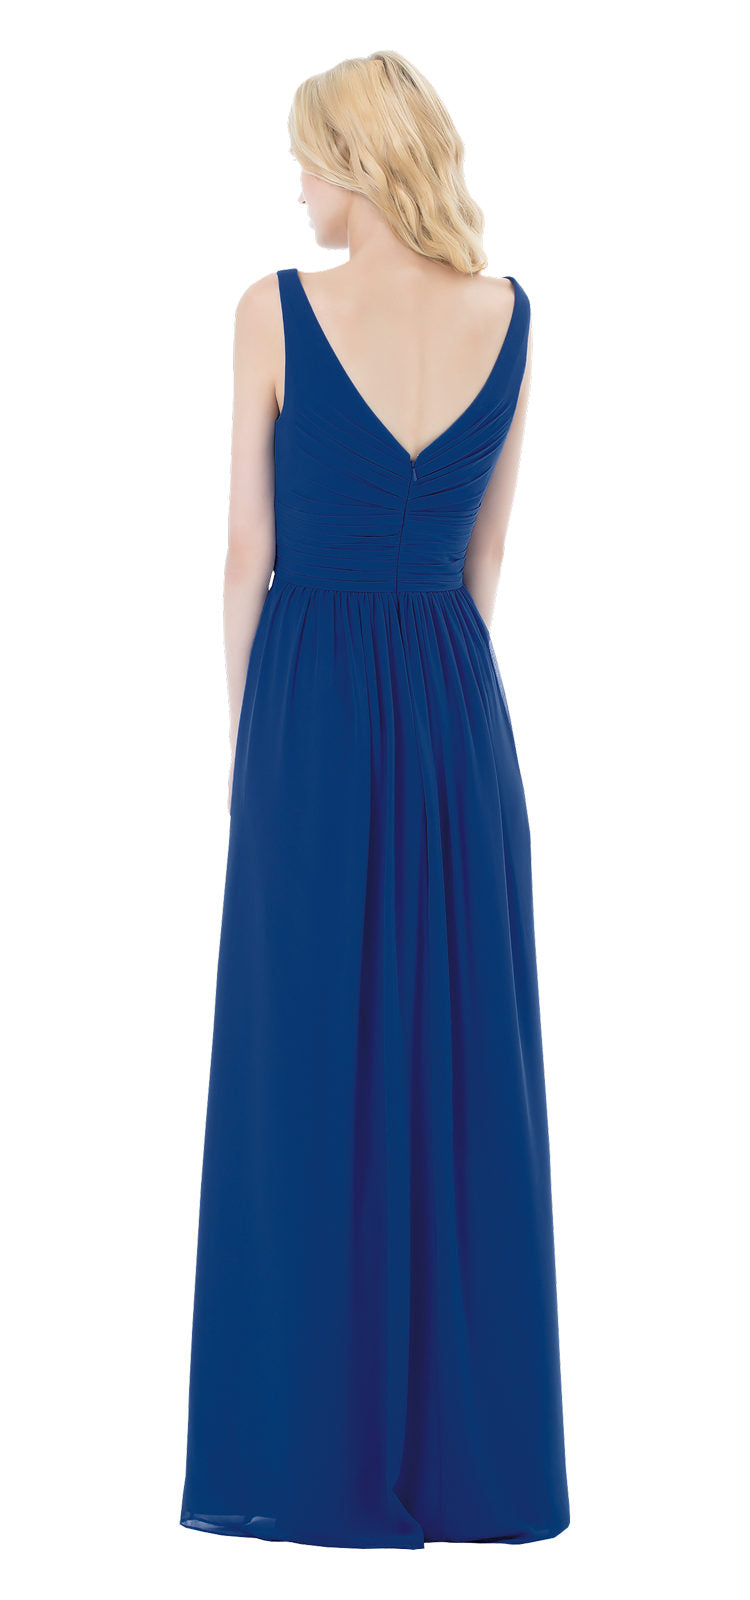 Bill Levkoff Bridesmaid Dress Style 498 back